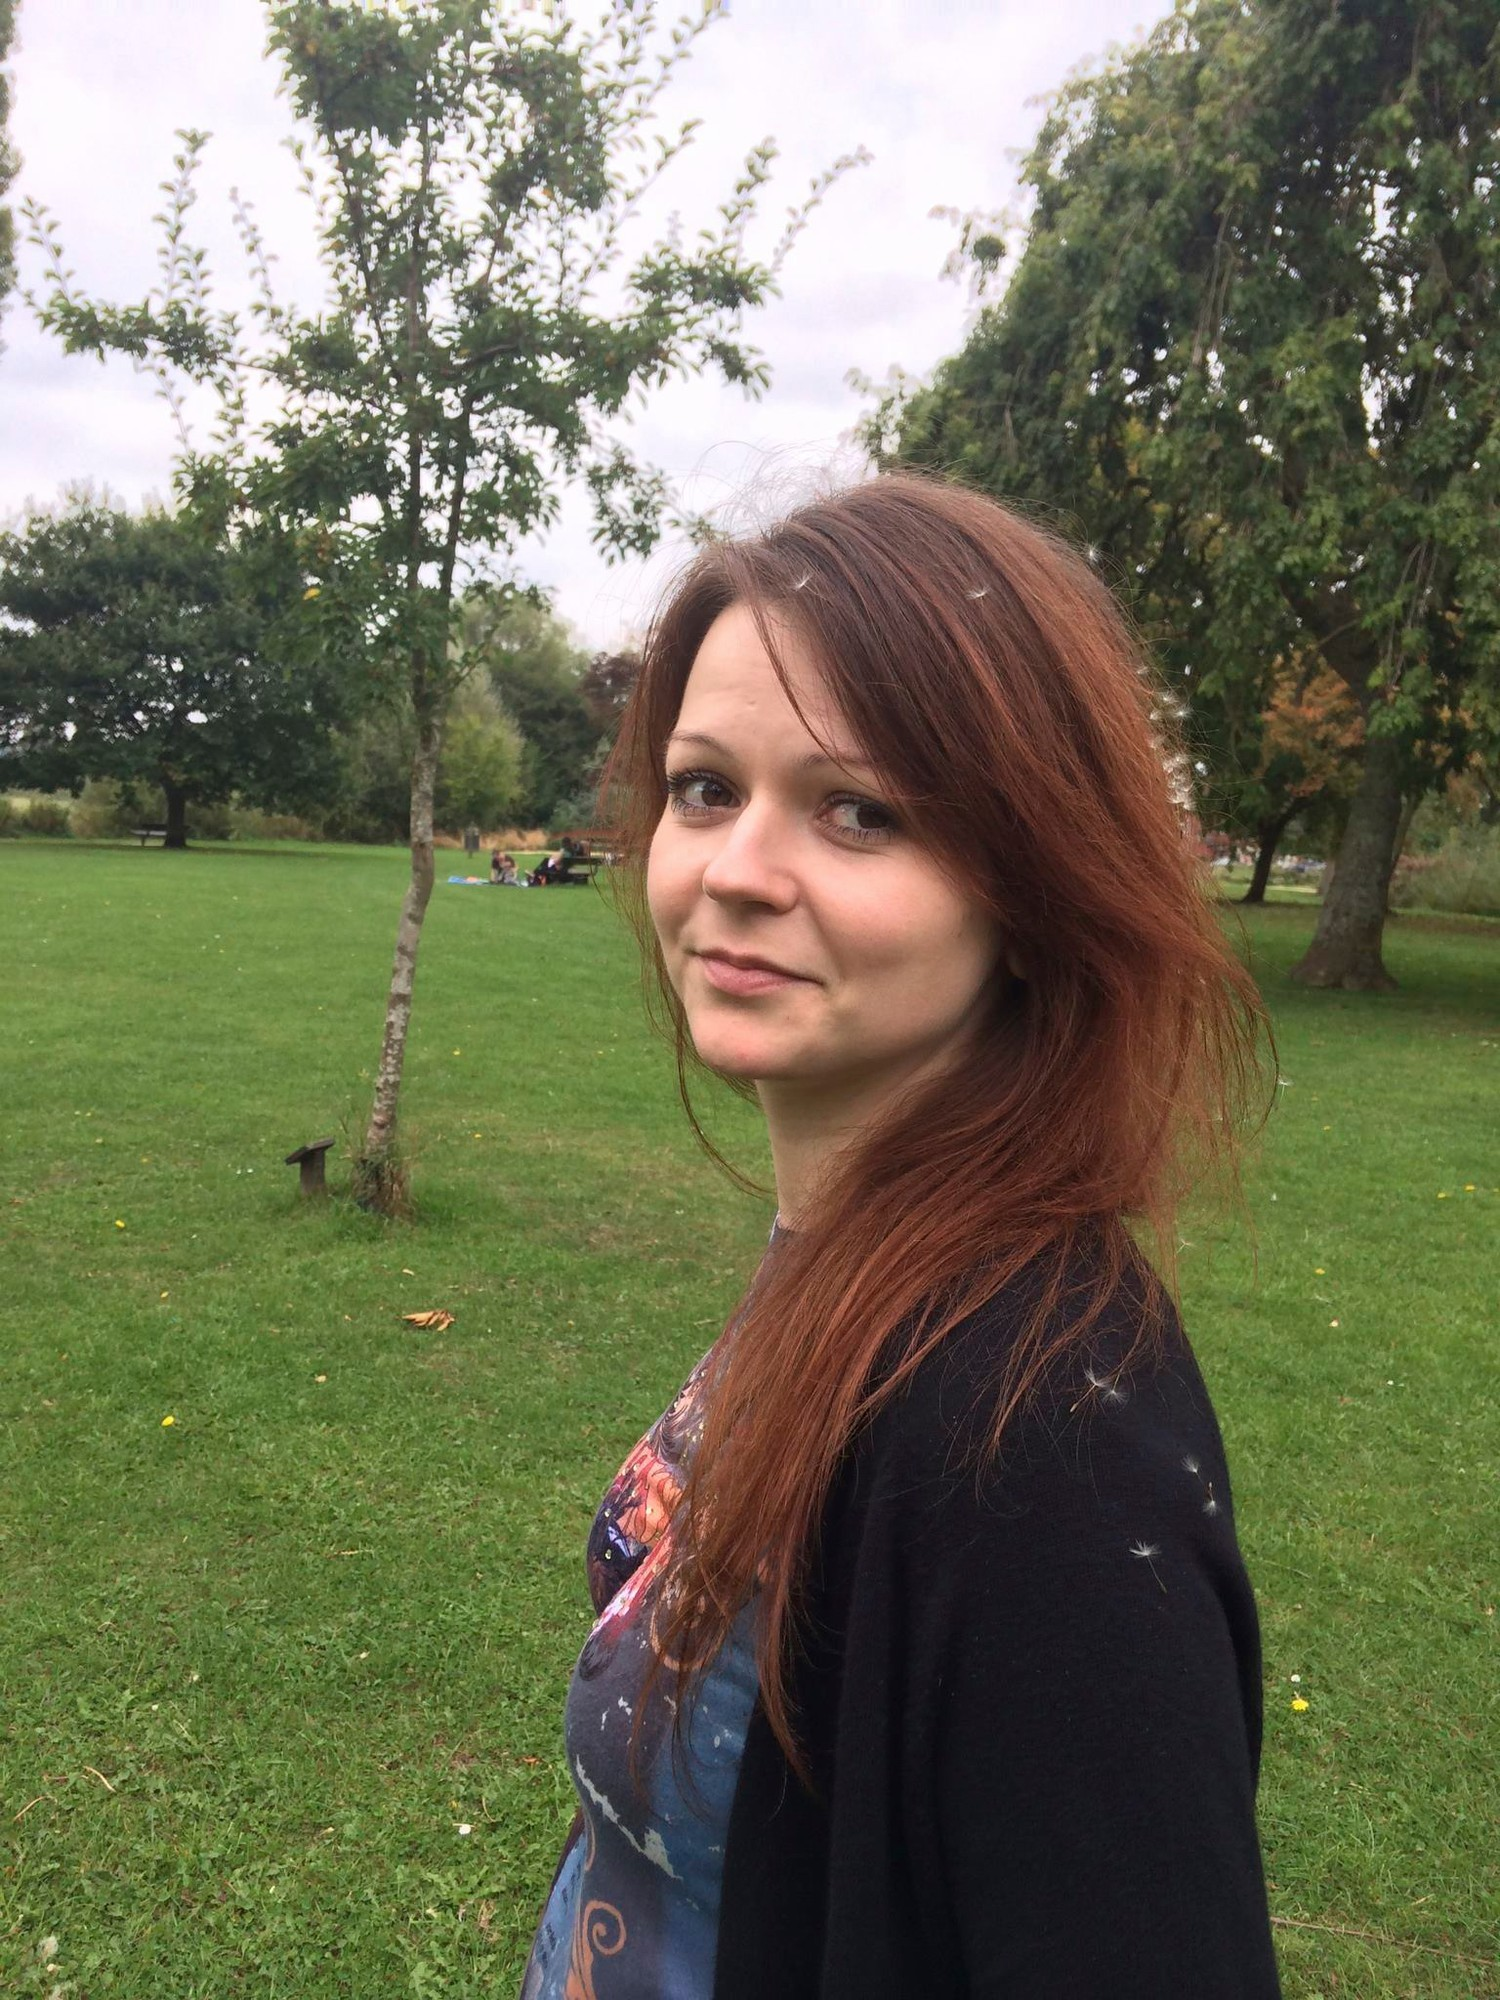 This is an alleged  image of the daughter of former Russian spy Sergei Skripal, Yulia Skripal, taken from Yulia Skripal's Facebook account on Tuesday.